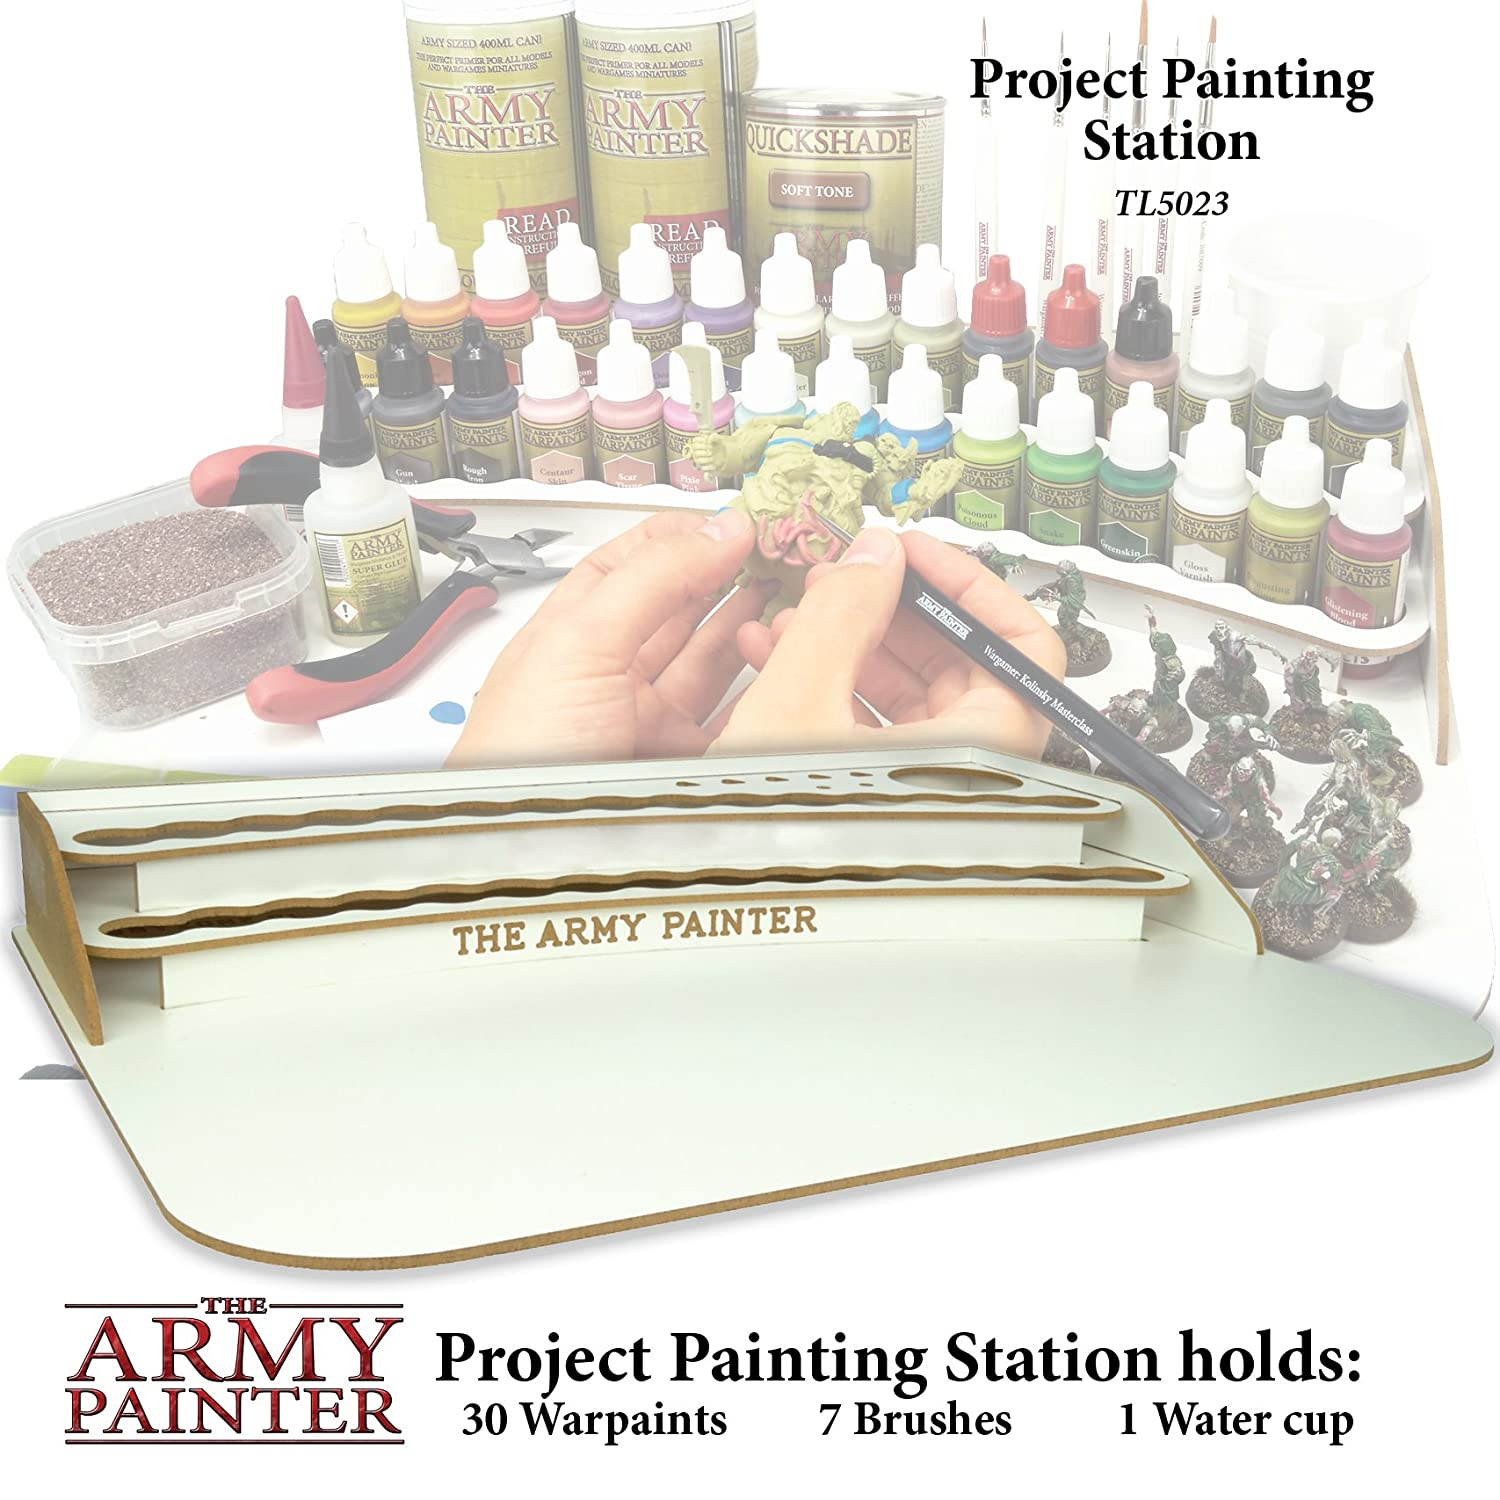 Amazon.com: The Army Painter Project Paint Station: Toys & Games